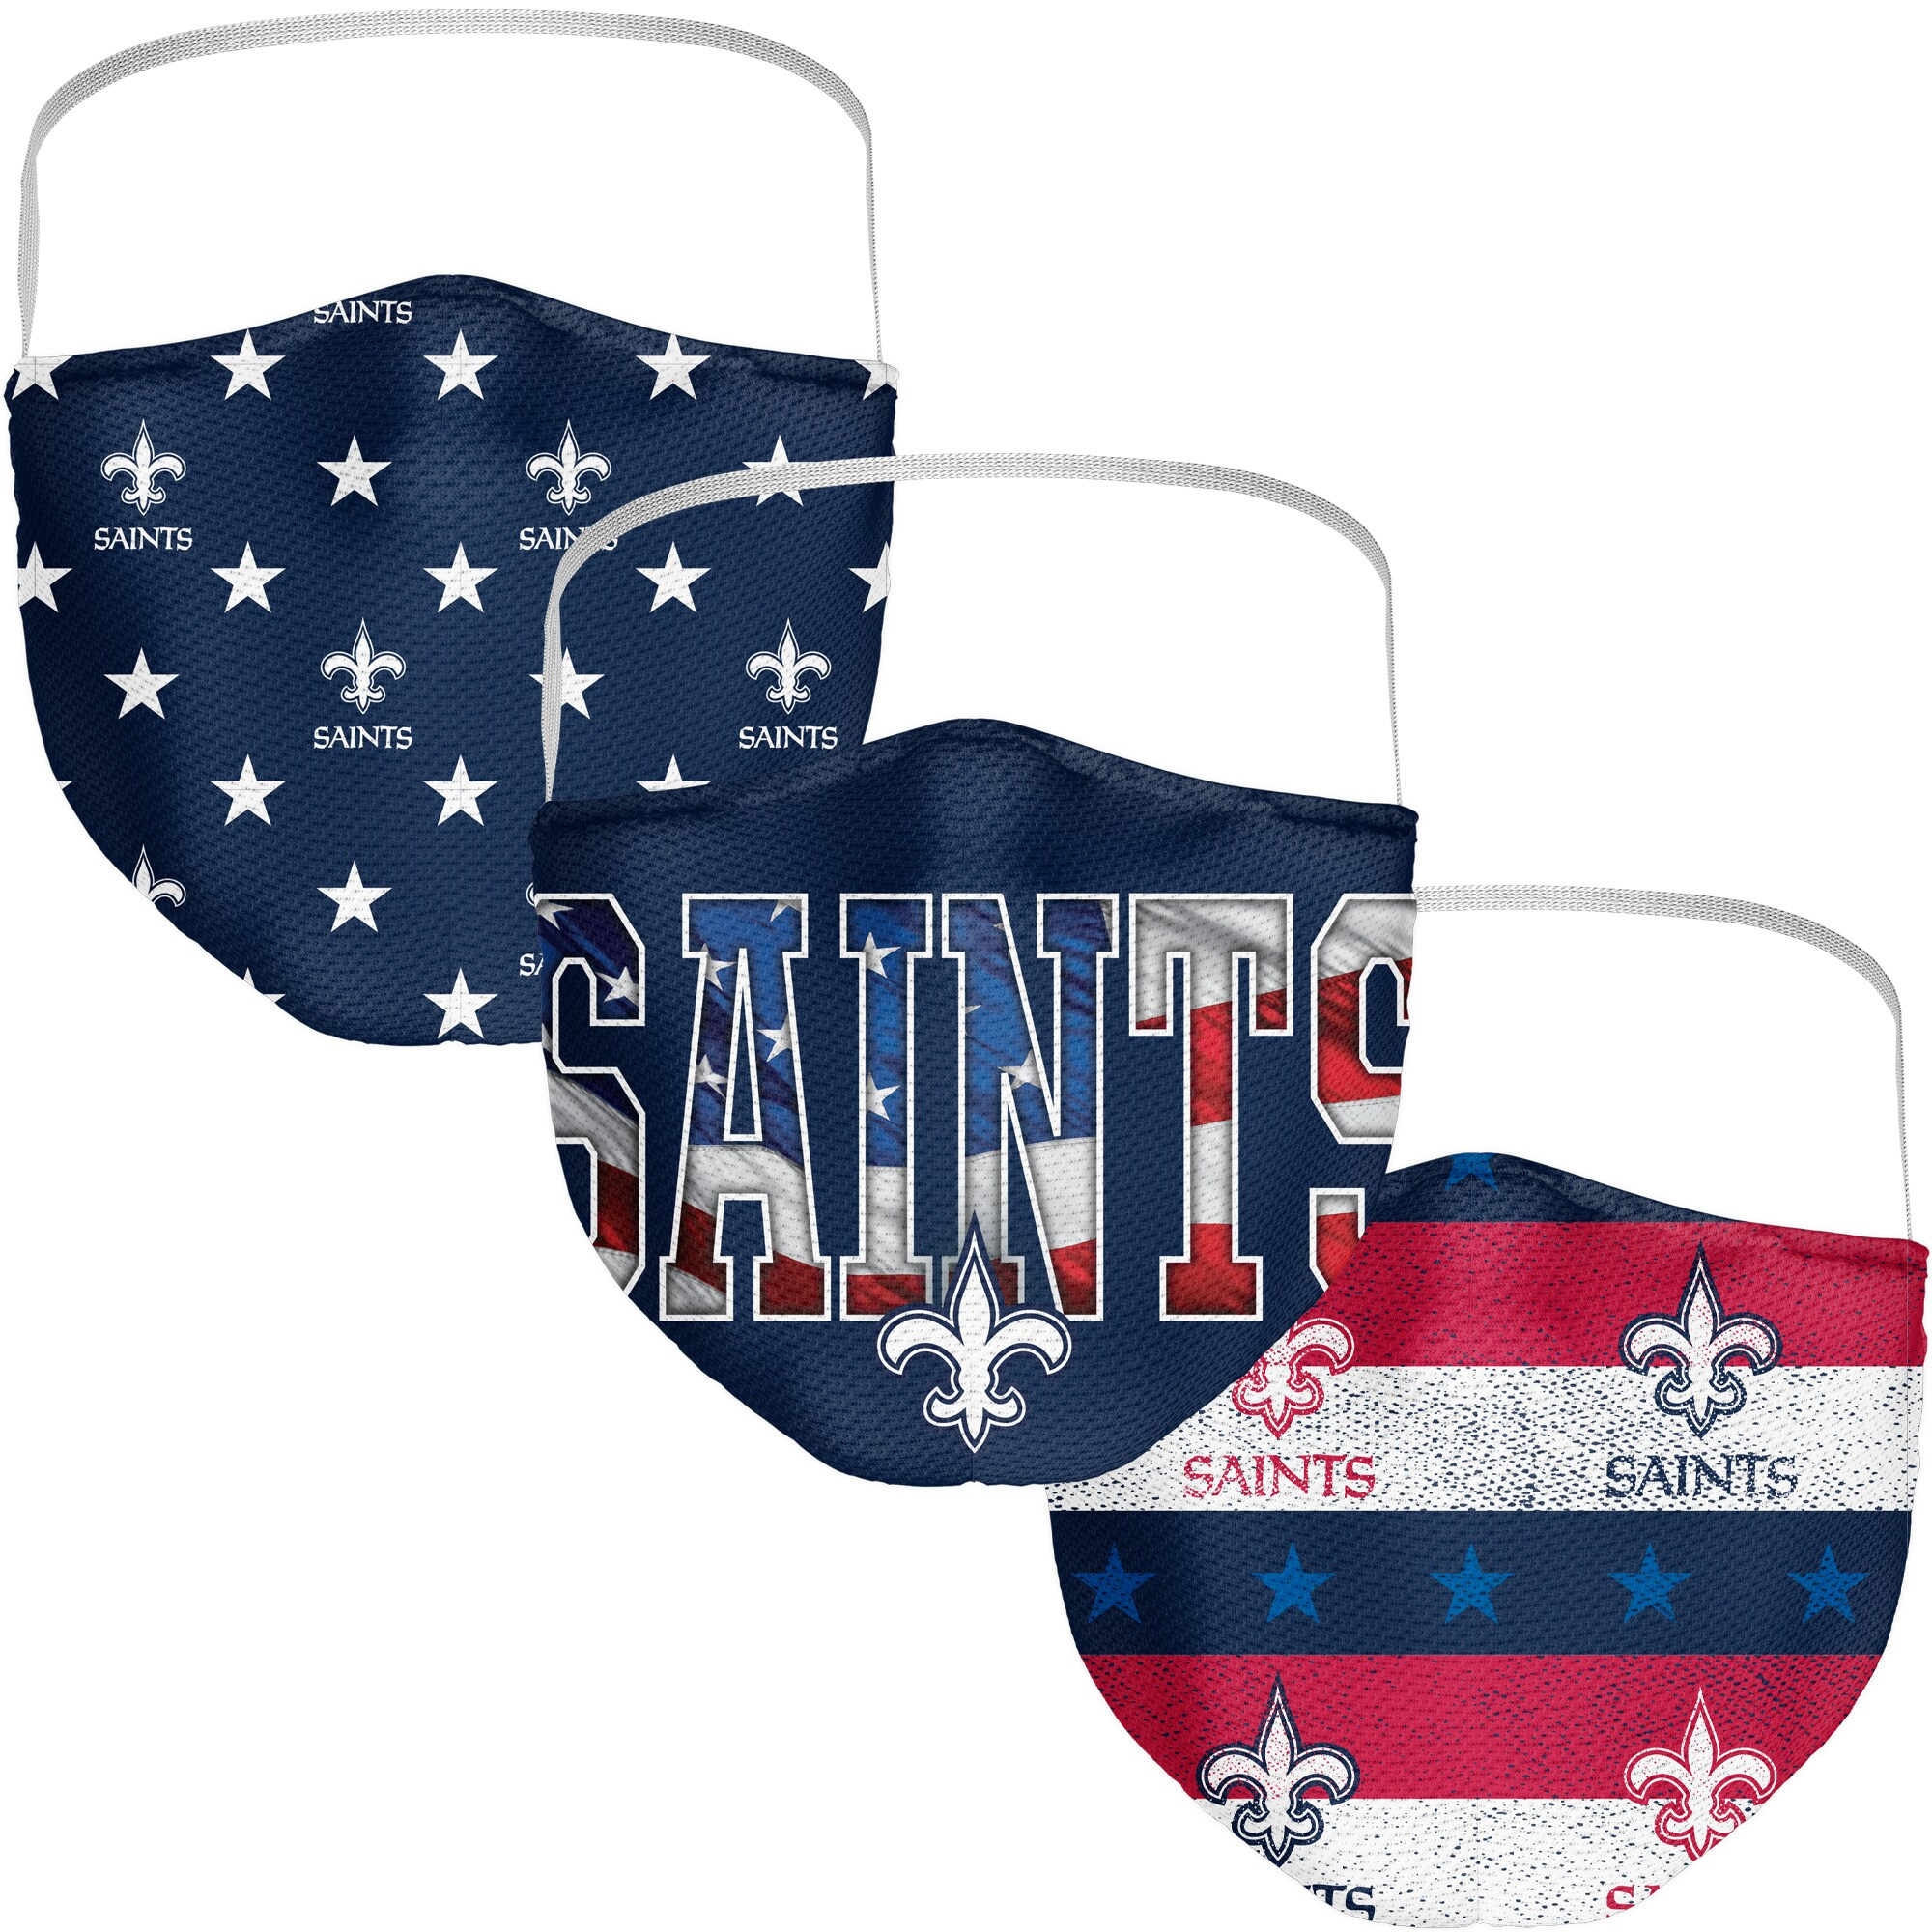 New Orleans Saints Fanatics Branded Adult Patriotic Face Covering 3-Pack